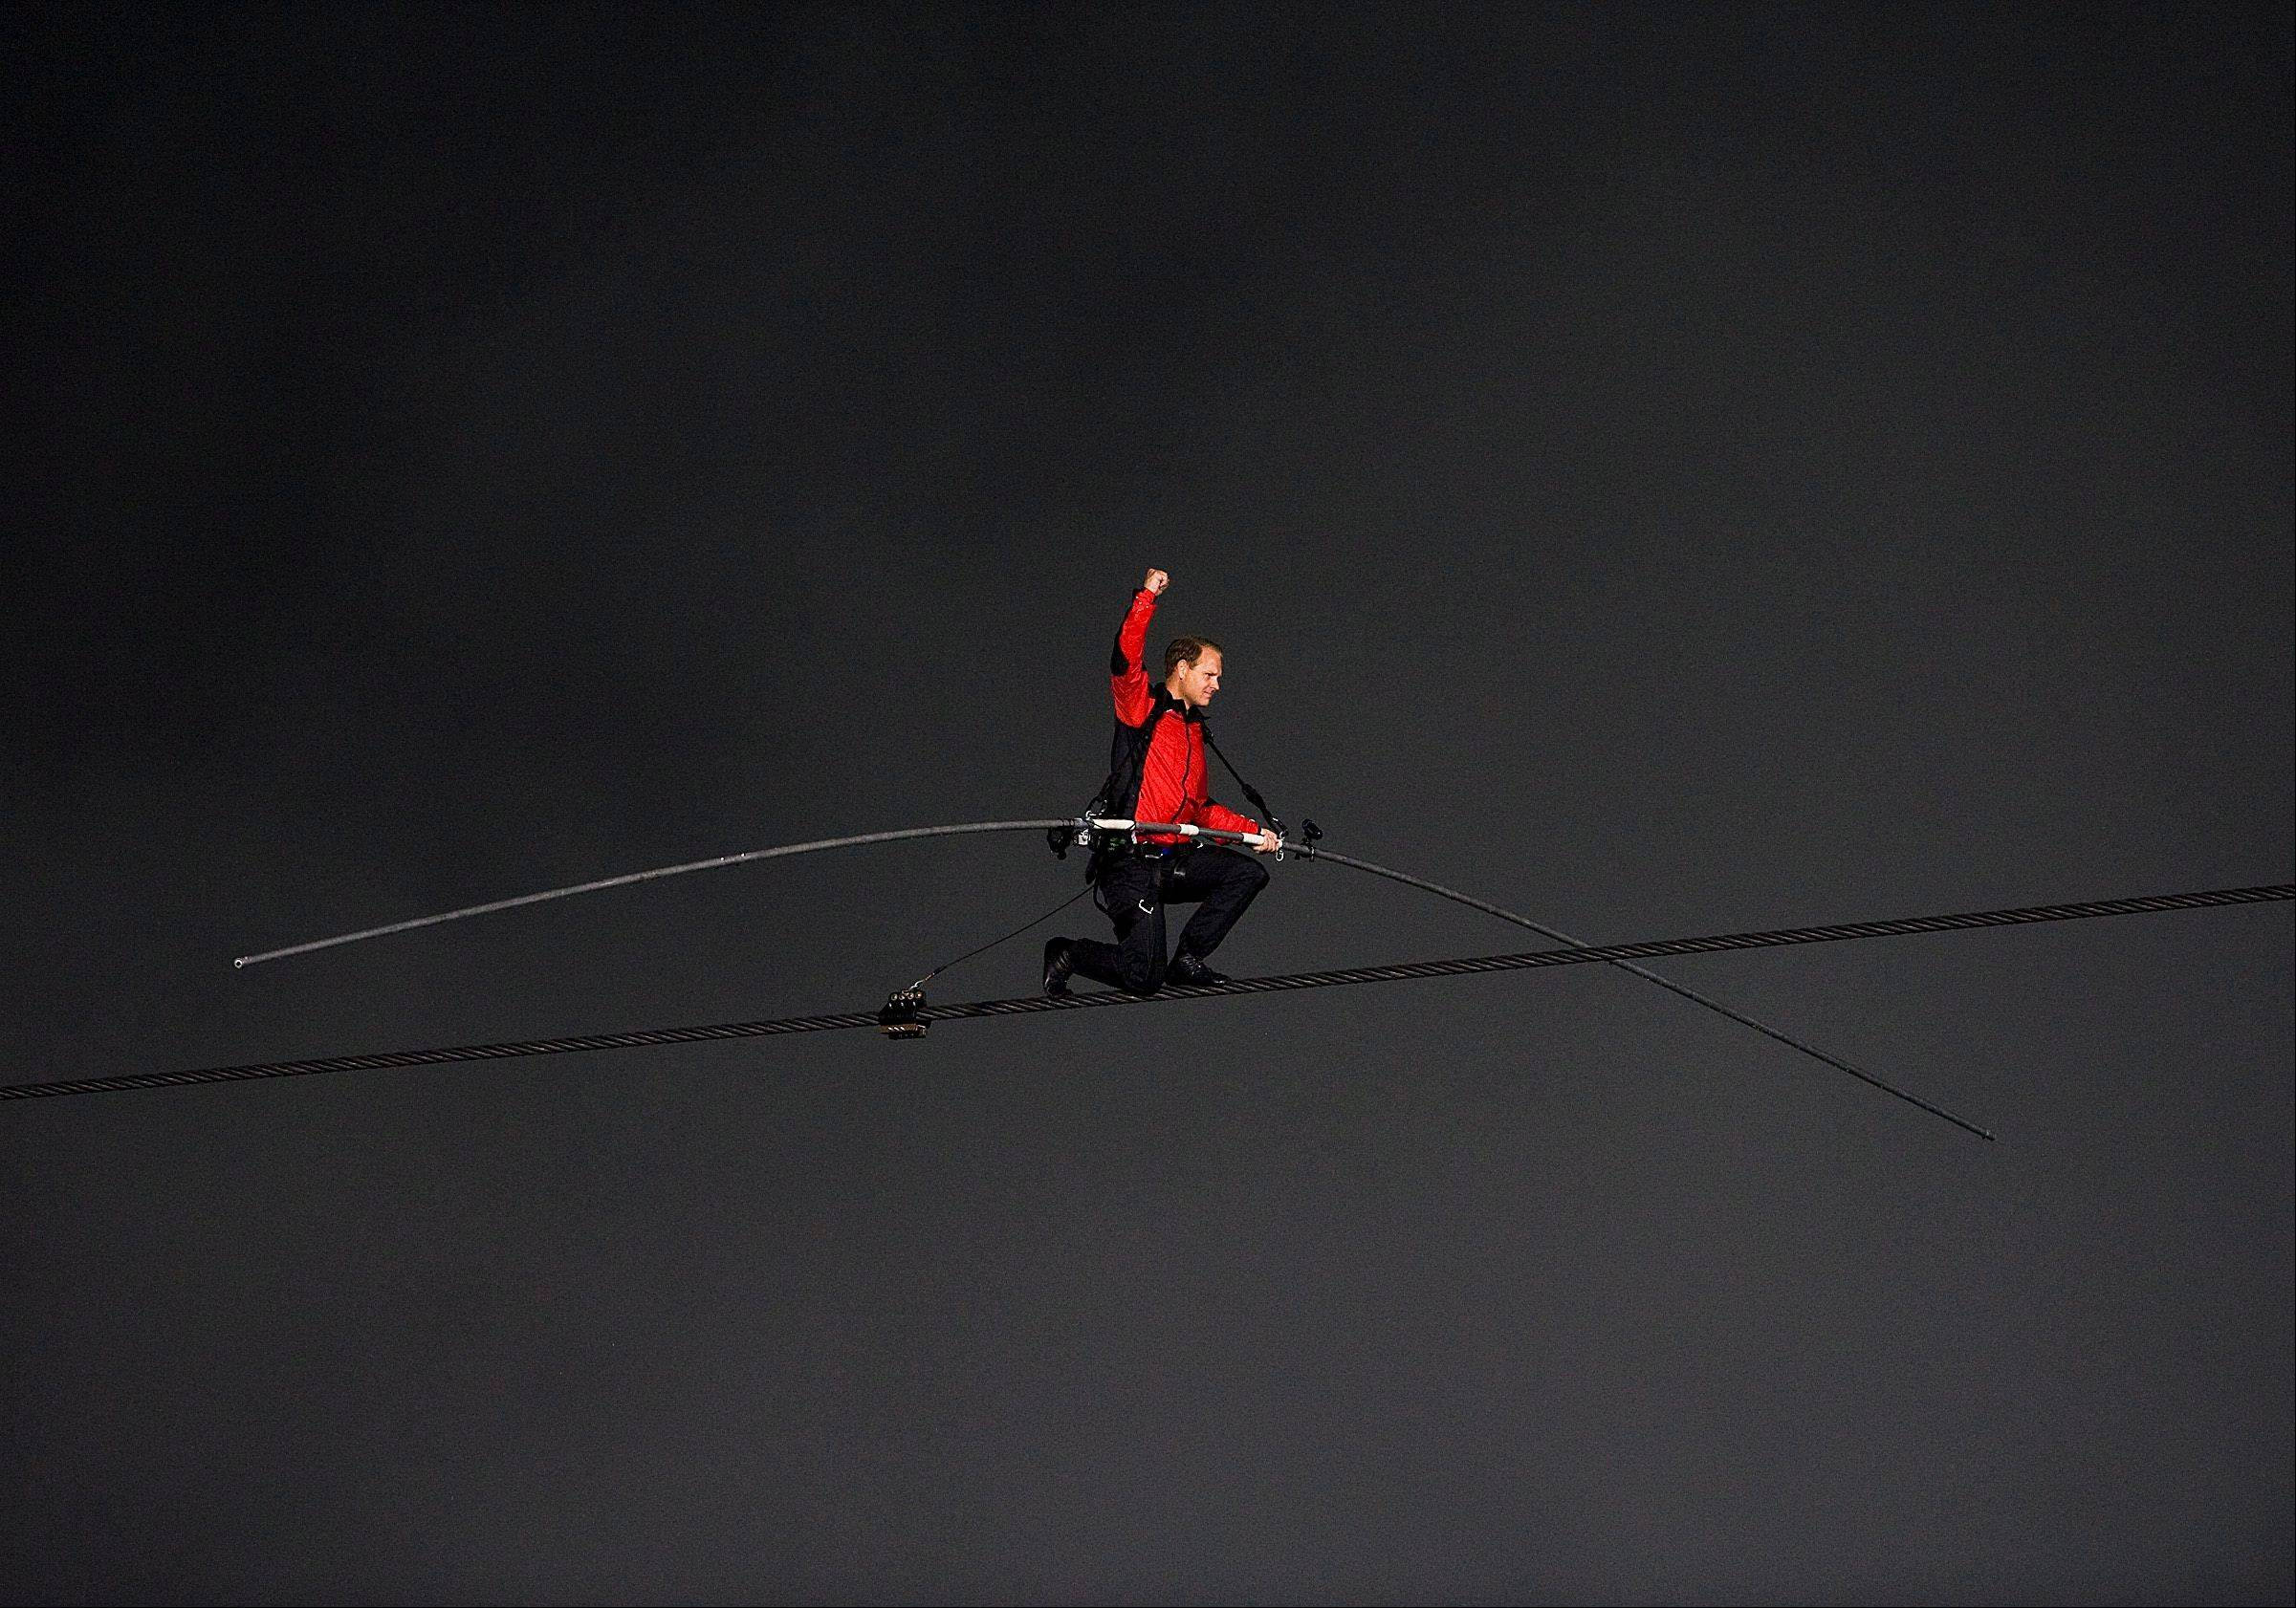 Nik Wallenda pumps his fist on one knee as he nears completion of his 1,800 feet-long tightrope walk over the brink of the Niagara Falls in Niagara Falls, Ont., on Friday, June 15, 2012. Wallenda battled brisk winds and thick mist Friday to make history, becoming the first person to walk across Niagara Falls on a tightrope.